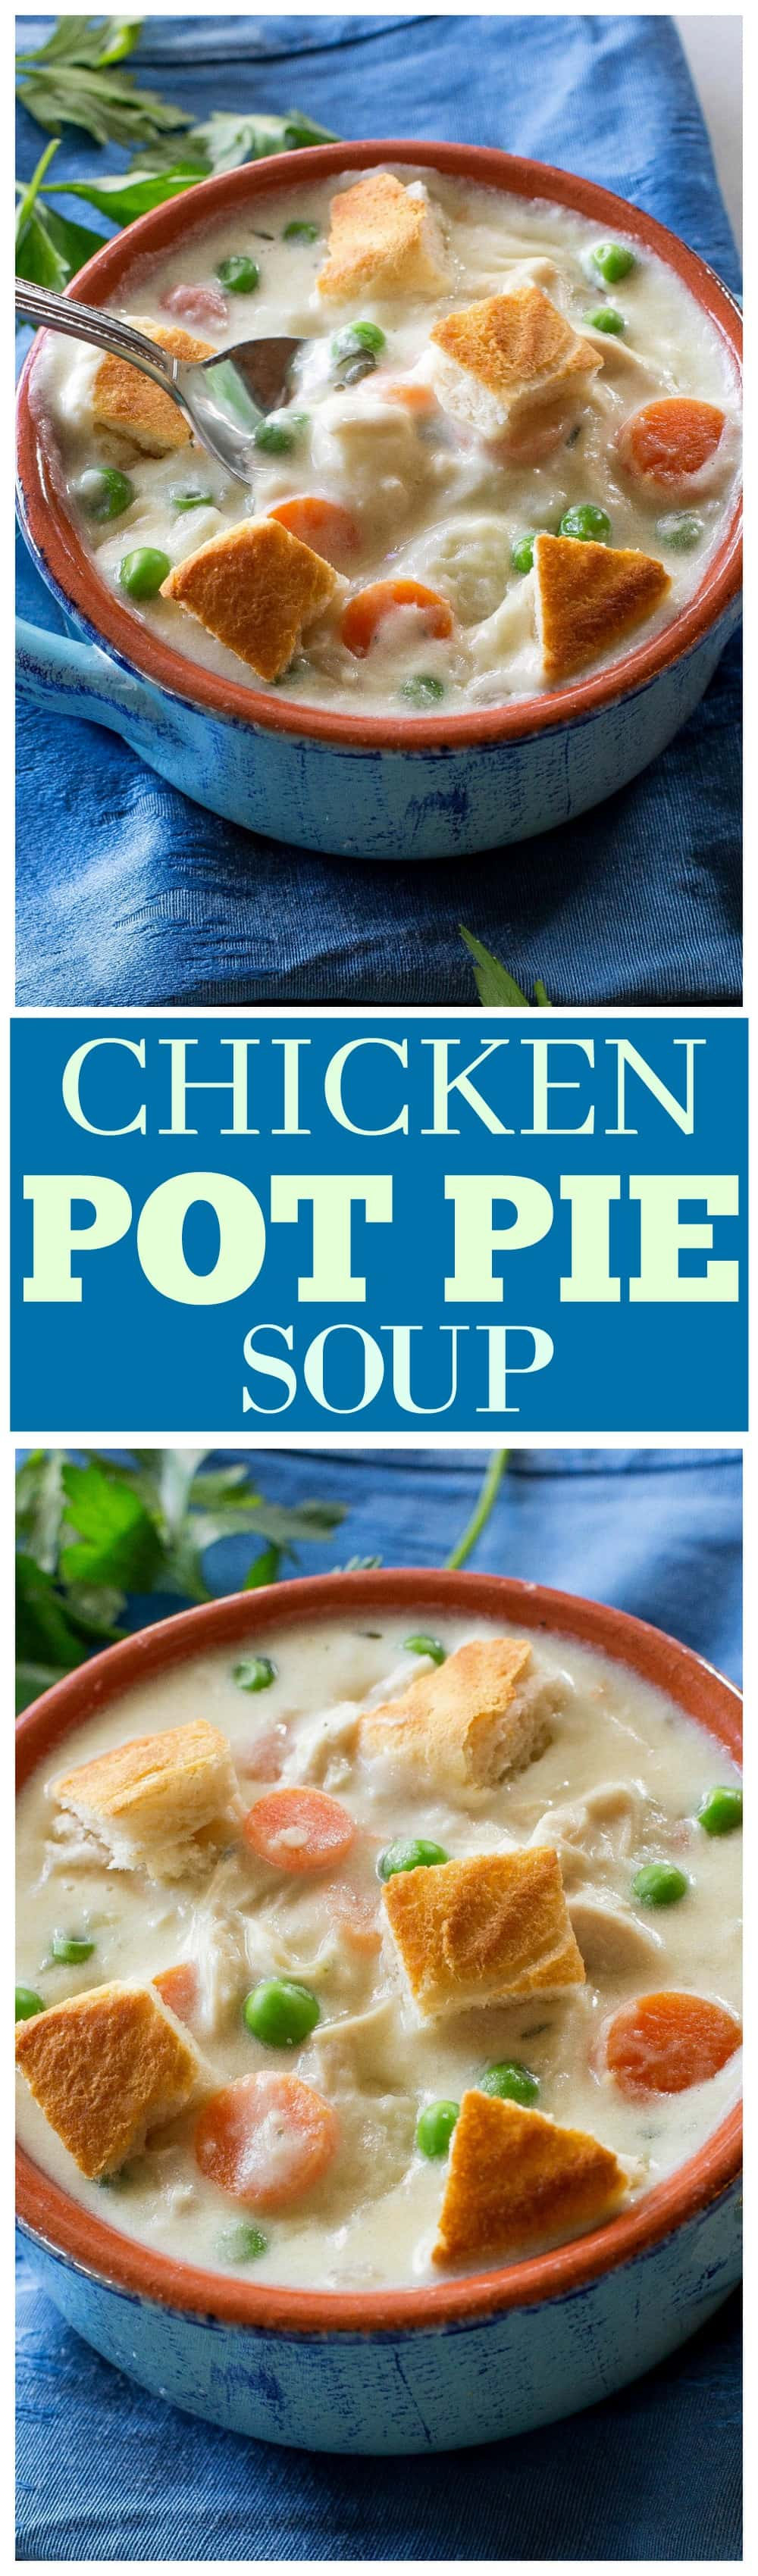 Chicken Pot Pie Soup - creamy pot pie soup with carrots, peas and potatoes. Seasoned to perfection! #chicken #pot #pie #soup #dinner #recipe